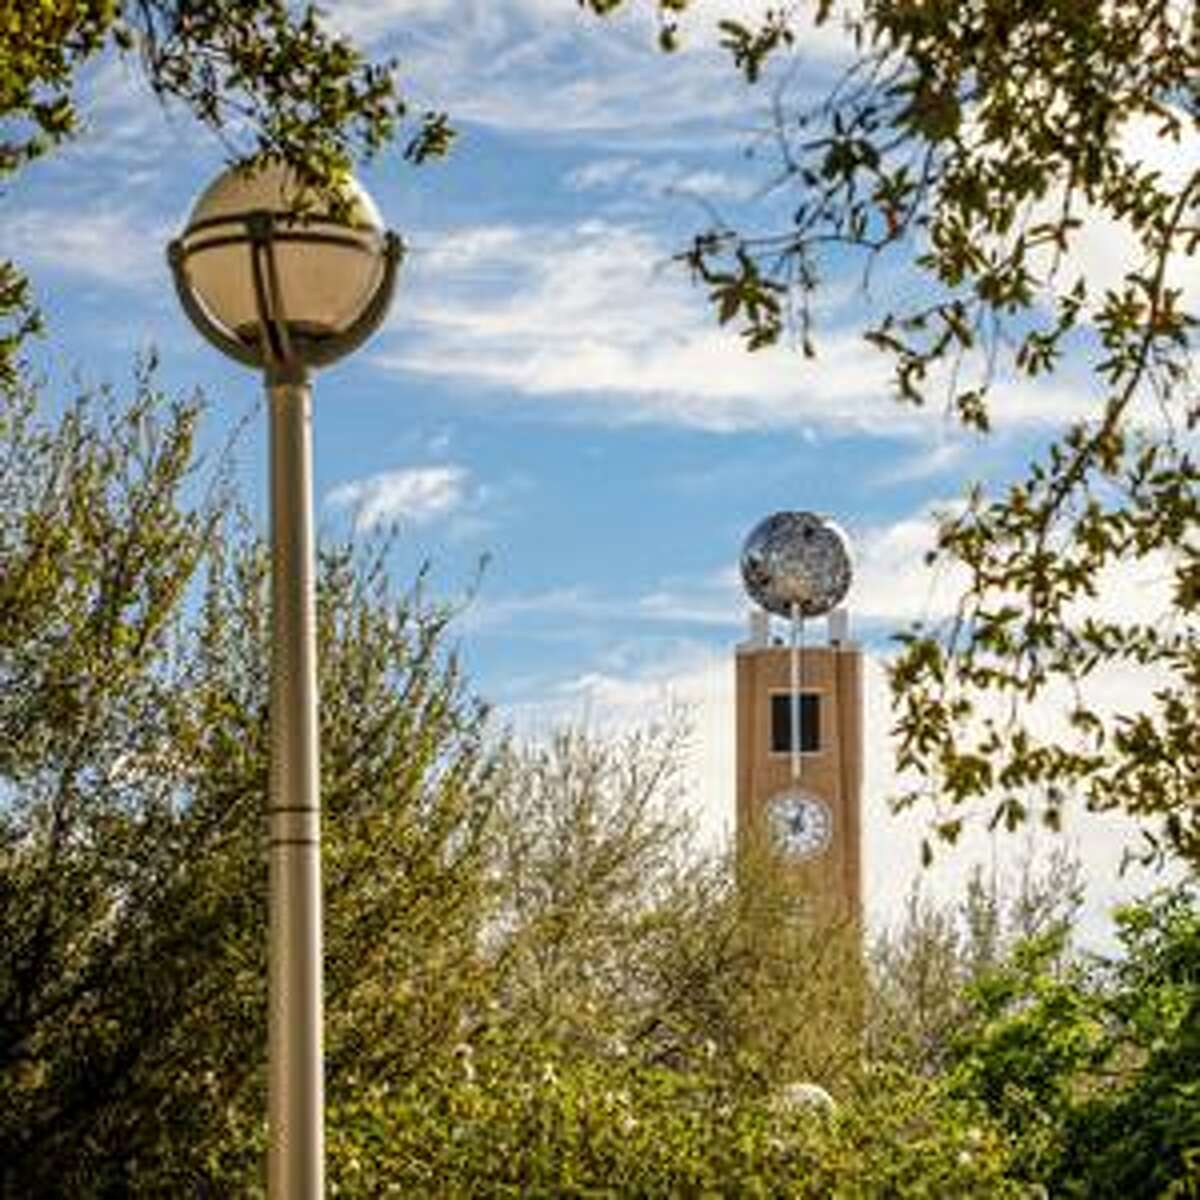 TAMIU has late registration continuing through Aug. 27 for undergraduate and graduate students.